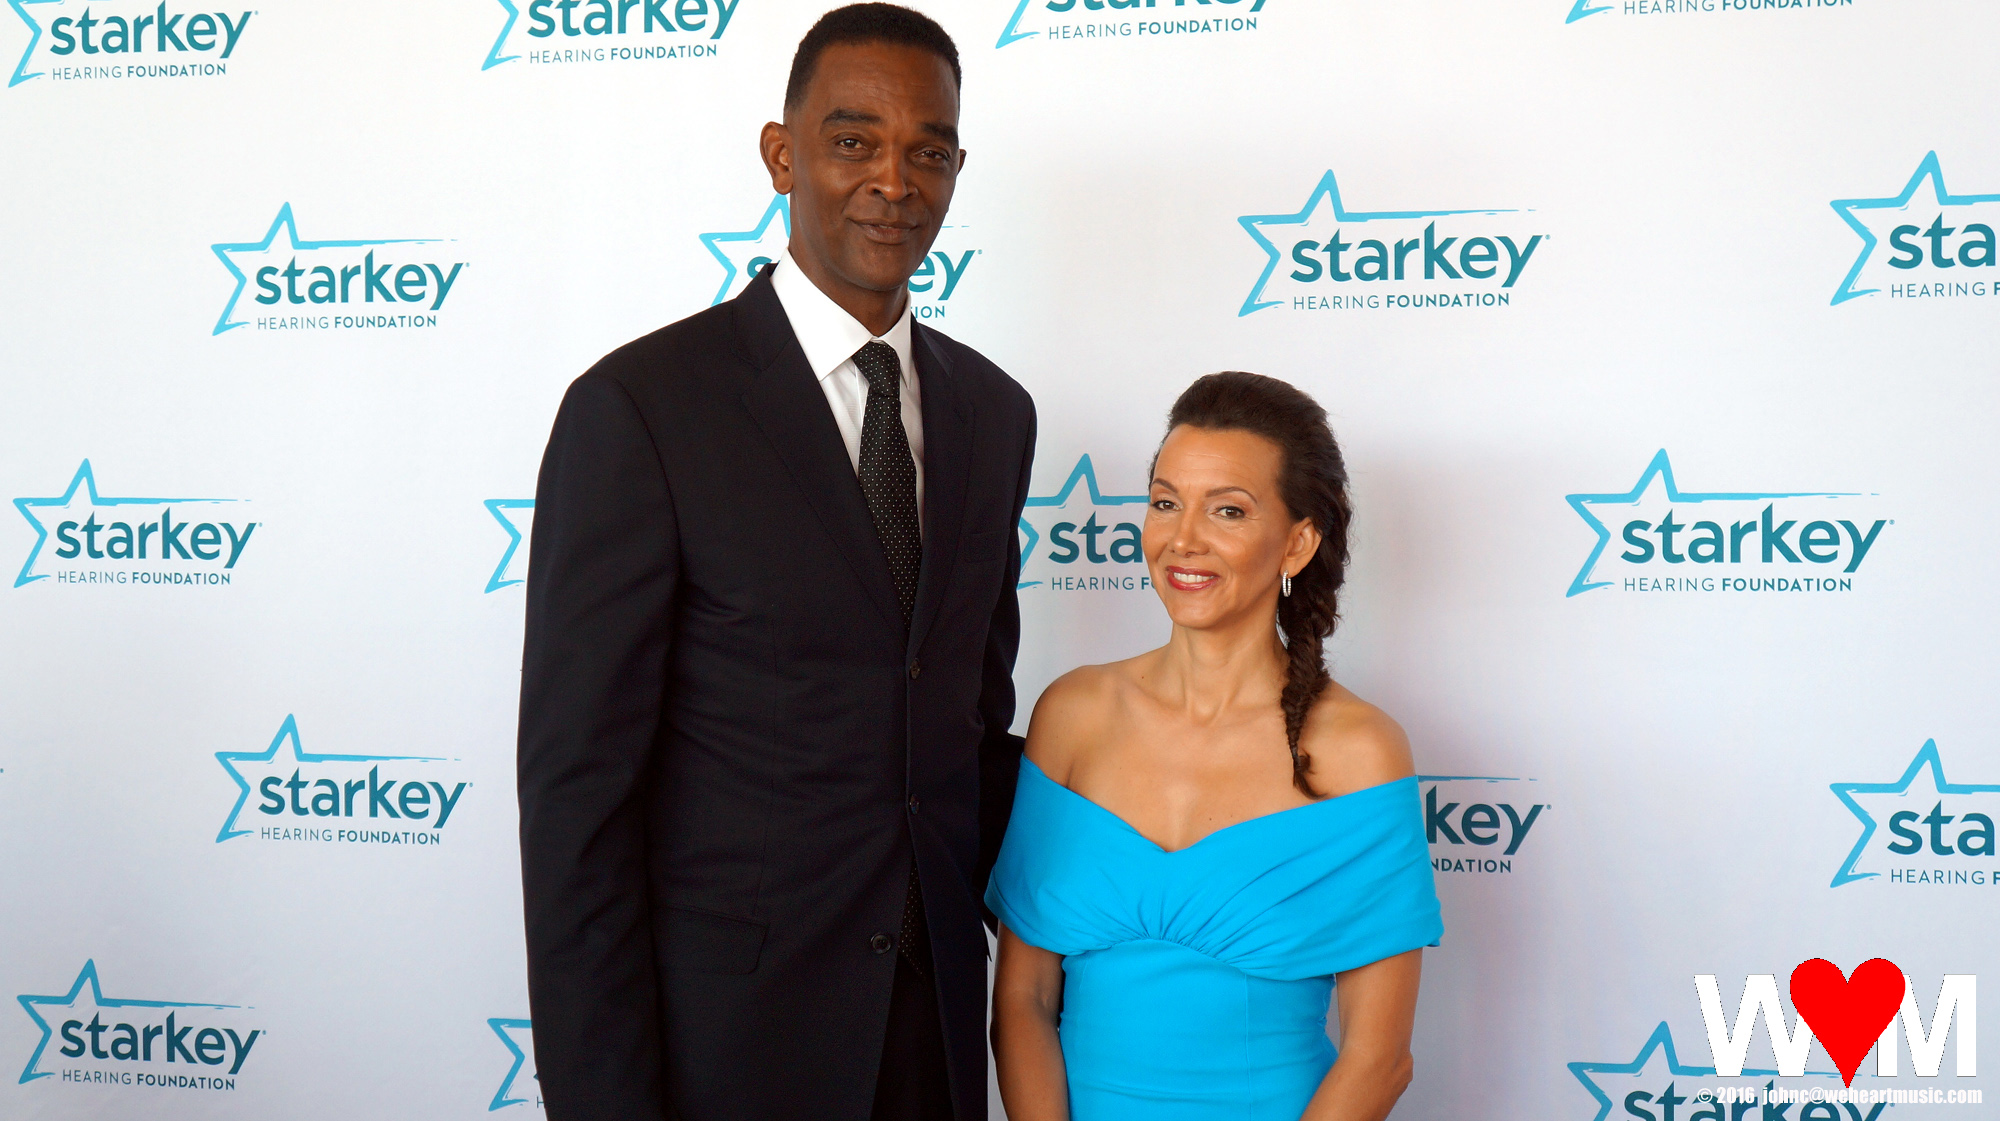 Starkey Hearing Foundation Gala Red Carpet at Rivercentre St